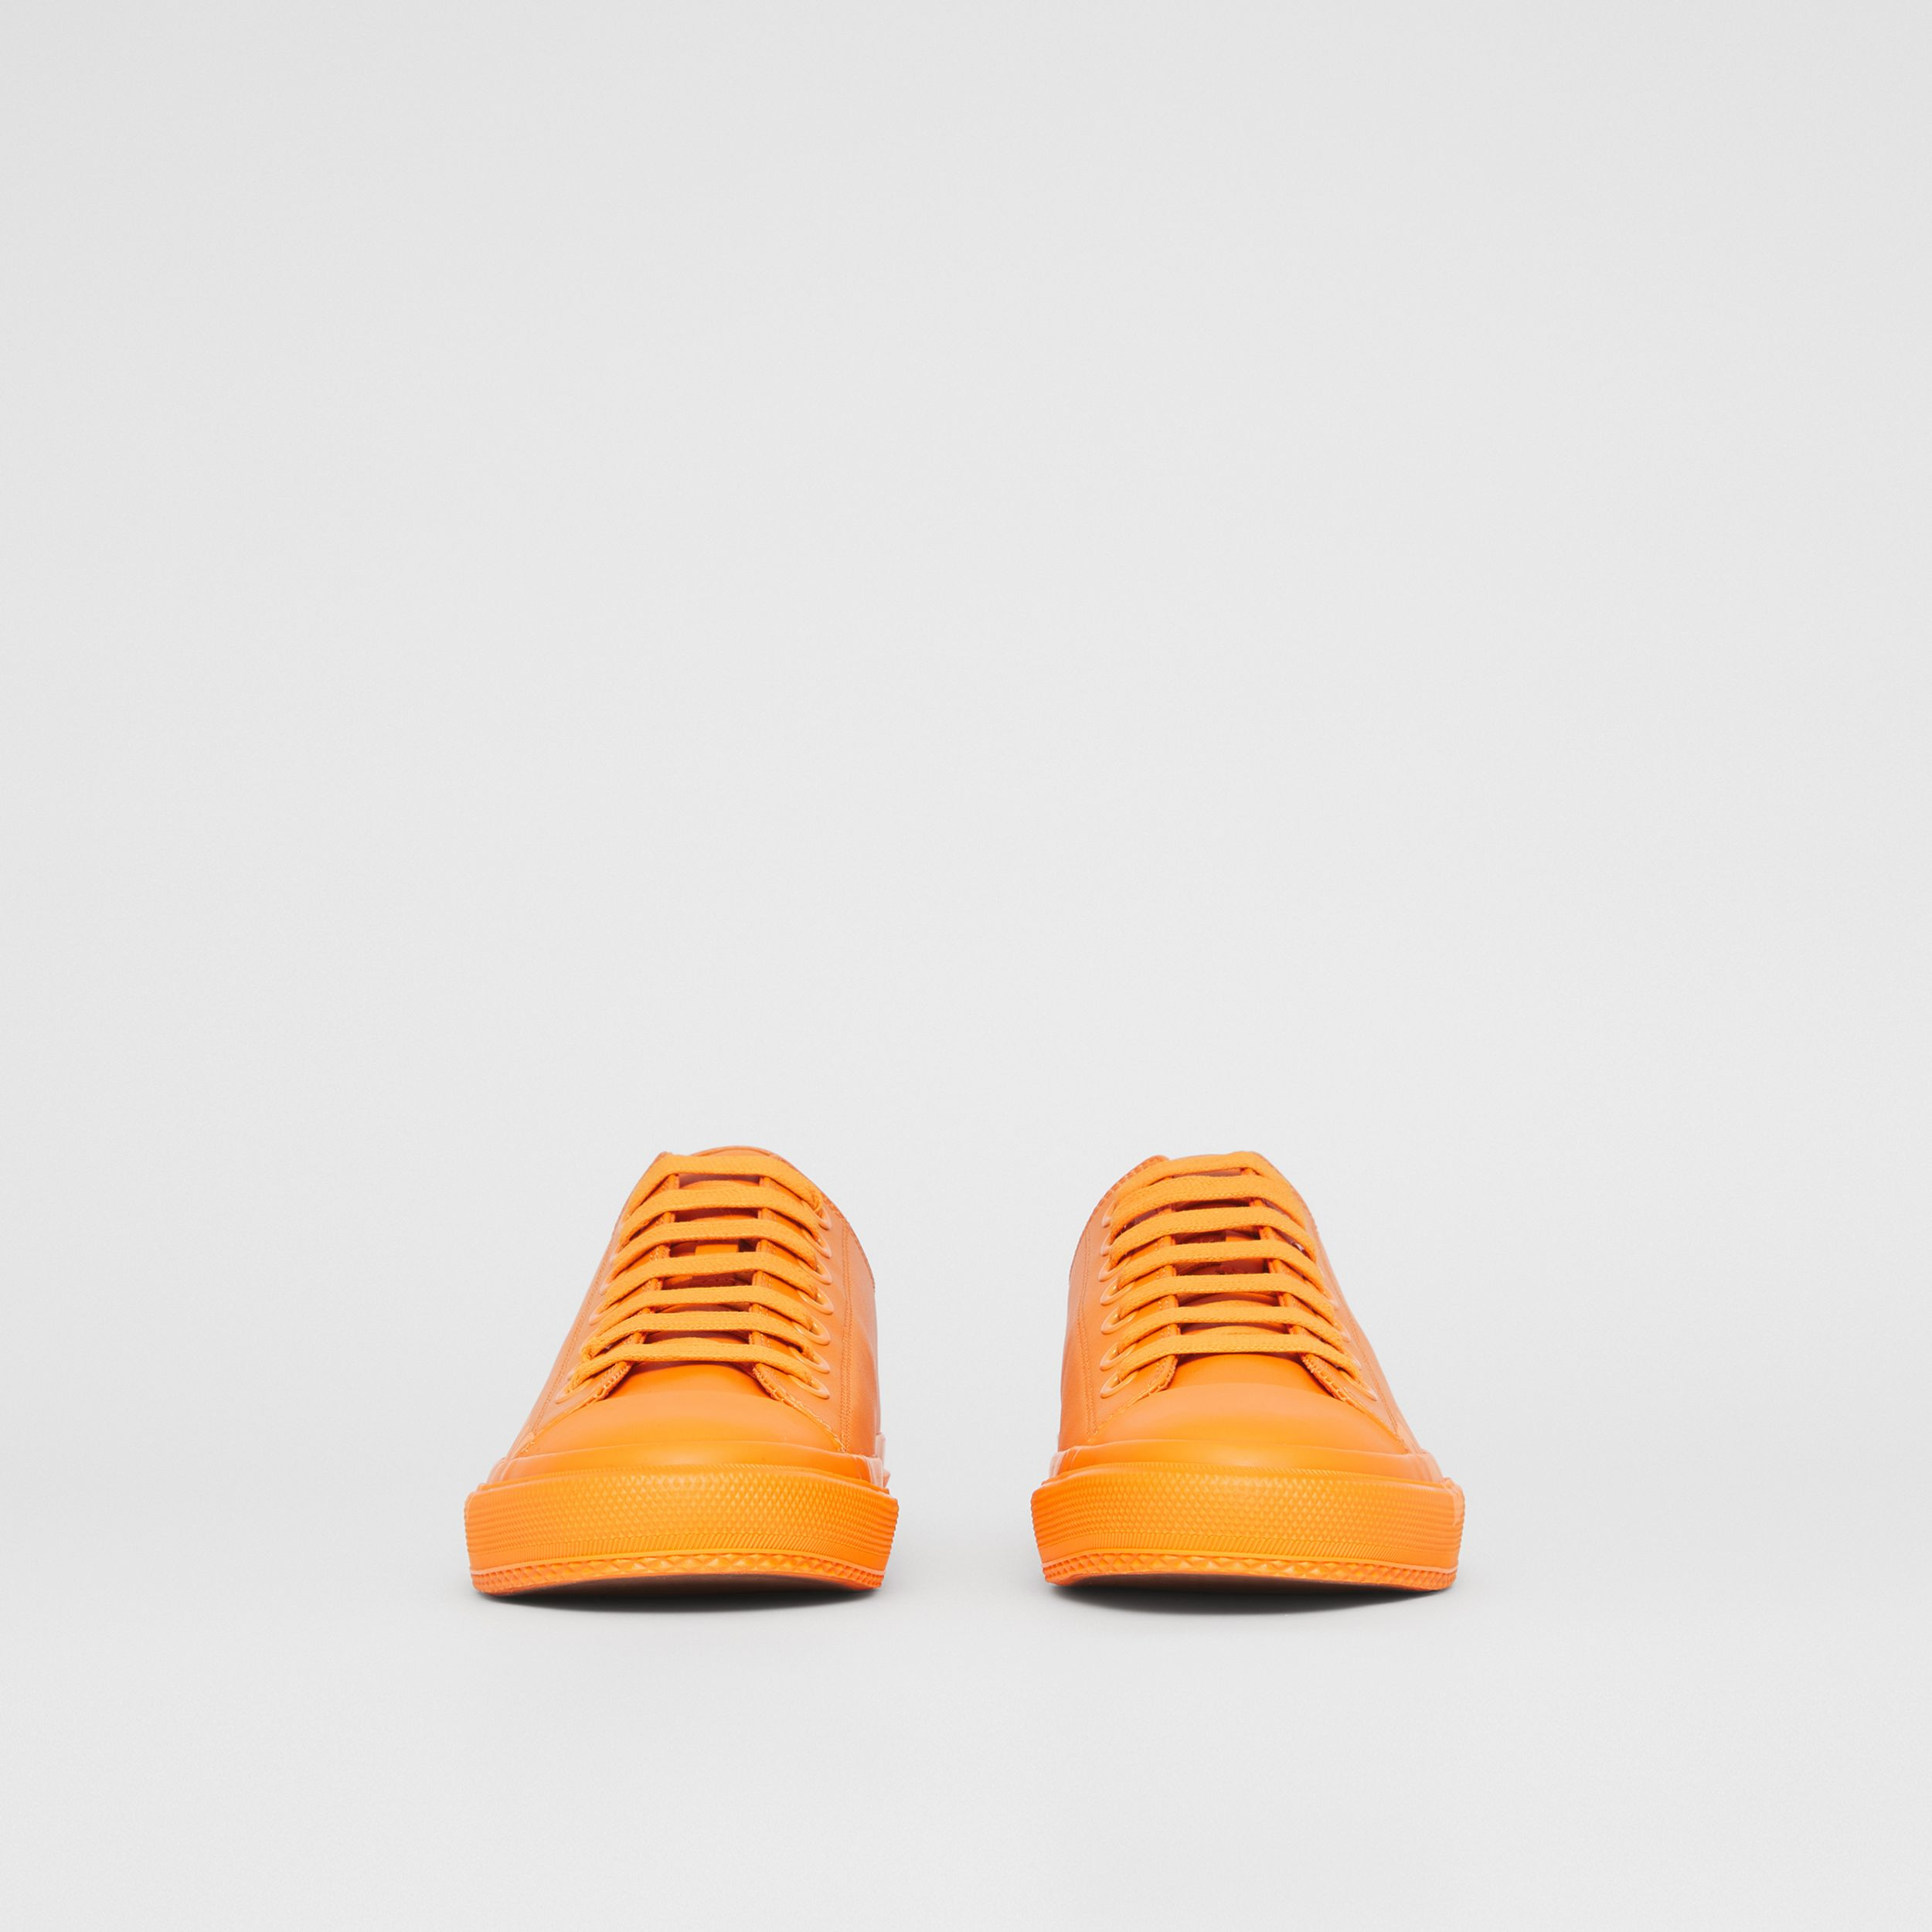 Logo Print Leather Sneakers – Online Exclusive in Deep Orange - Women | Burberry United Kingdom - 3